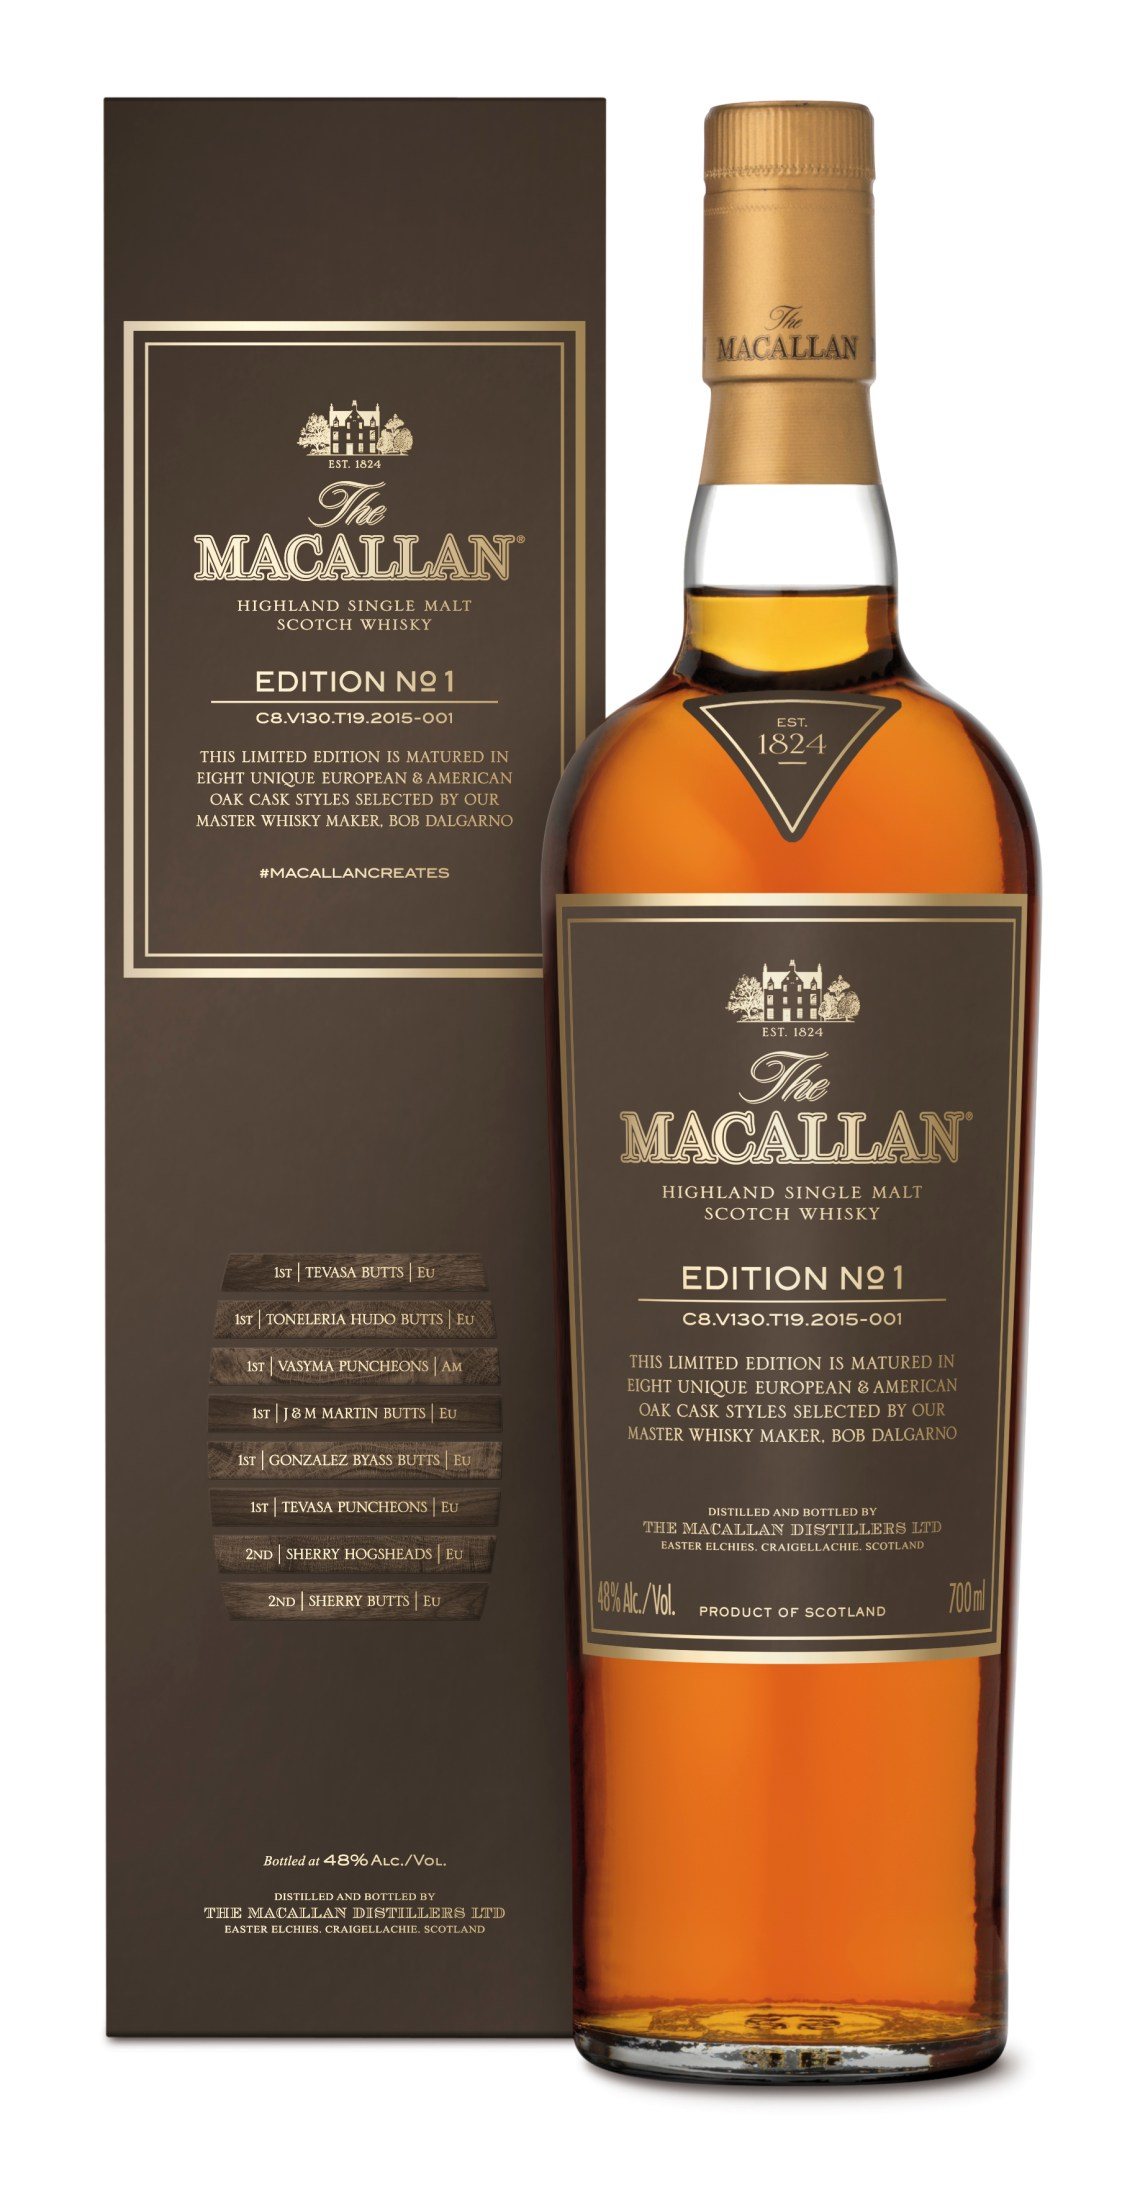 The Macallan Edition No. 1